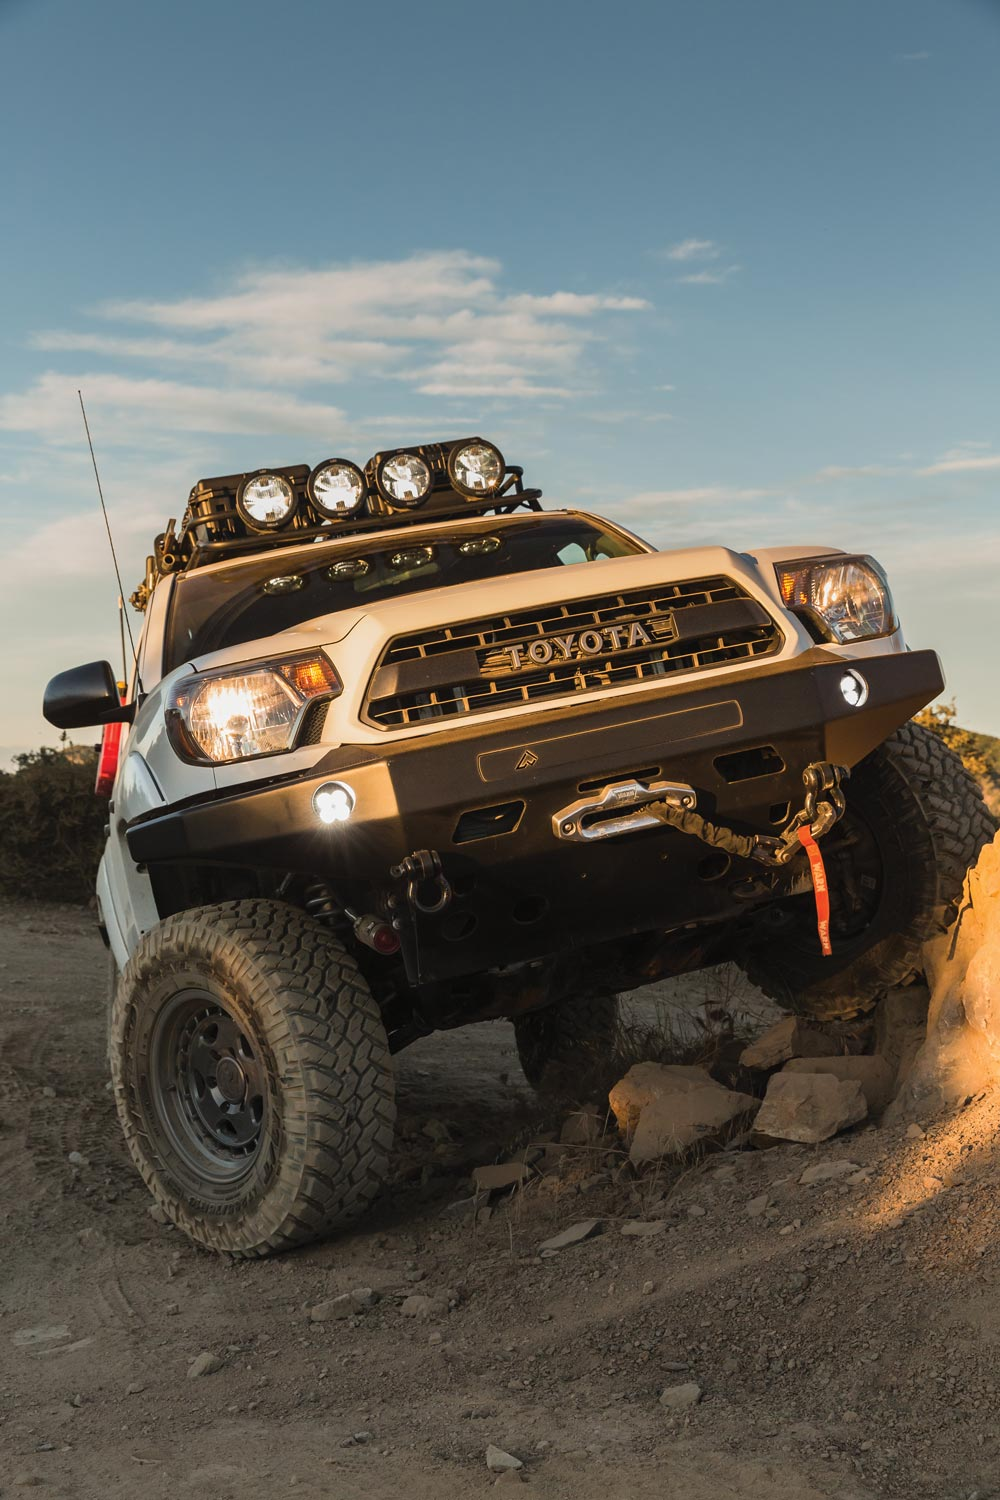 Pelfreybilt aluminum front bumper houses Hella Micro 70 LED lights, Warn winch, Epic winch hook